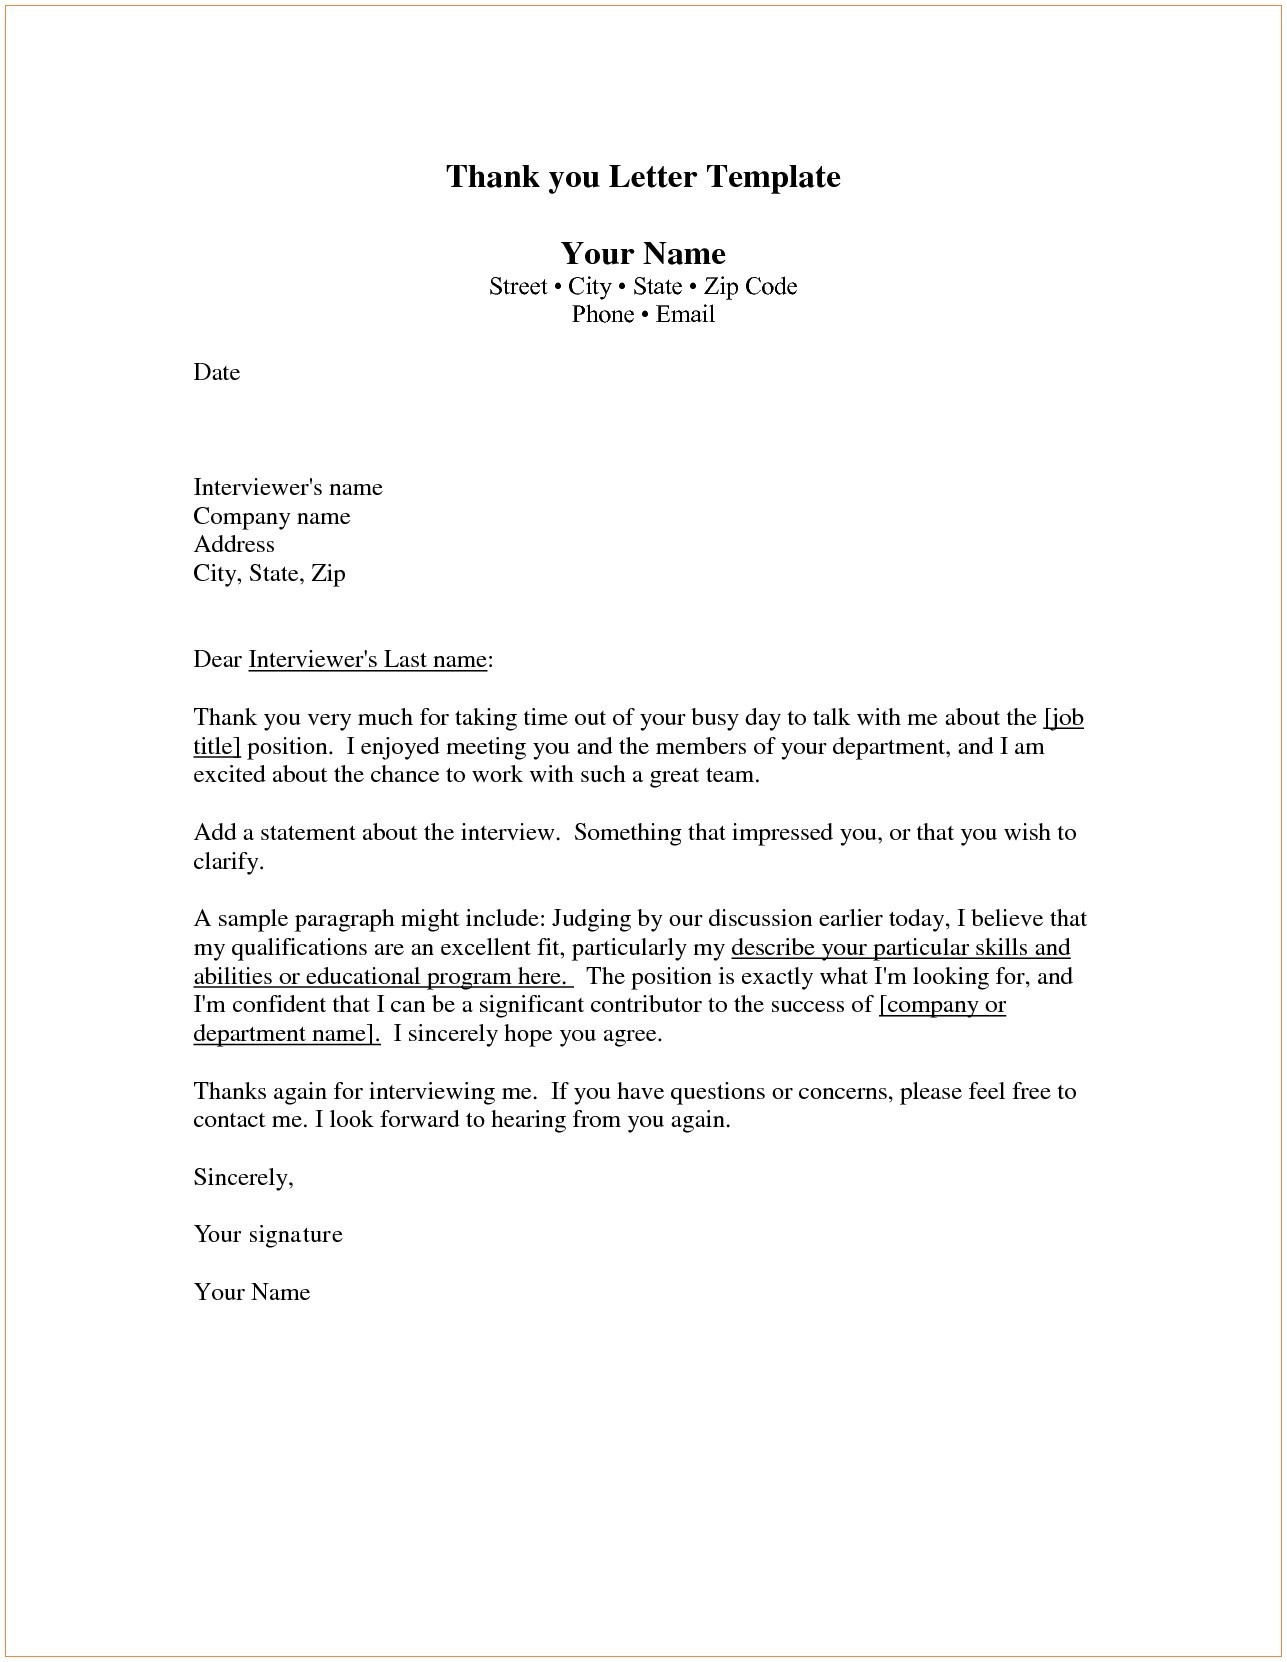 Employment Thank You Letter Template - Thank You Letters for Job Interviews Save Http Jobsearch About Od